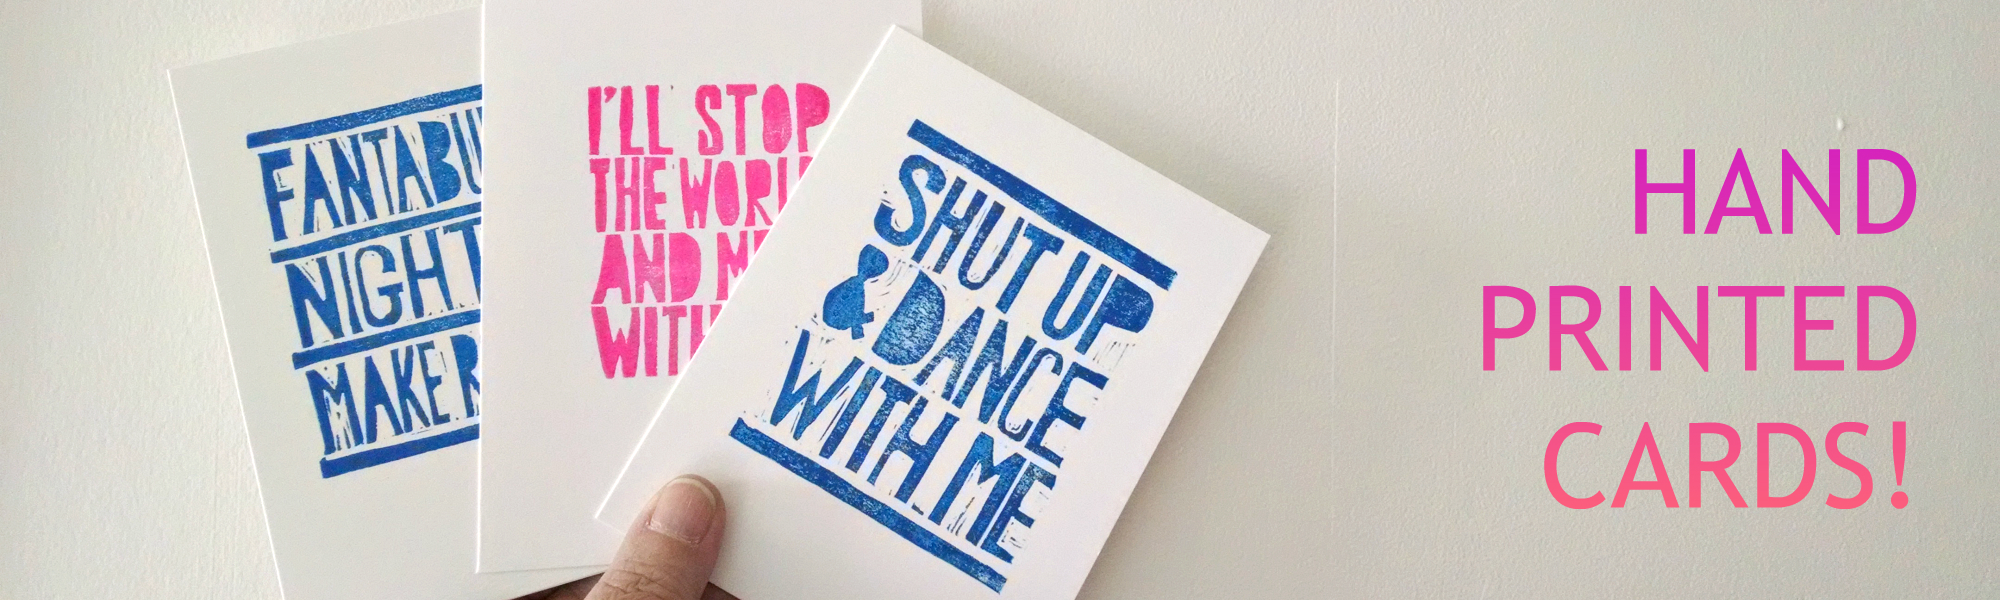 hand printed cards, shut up and dance with me, i'll stop the world and melt with you, fantabulous night to make romance